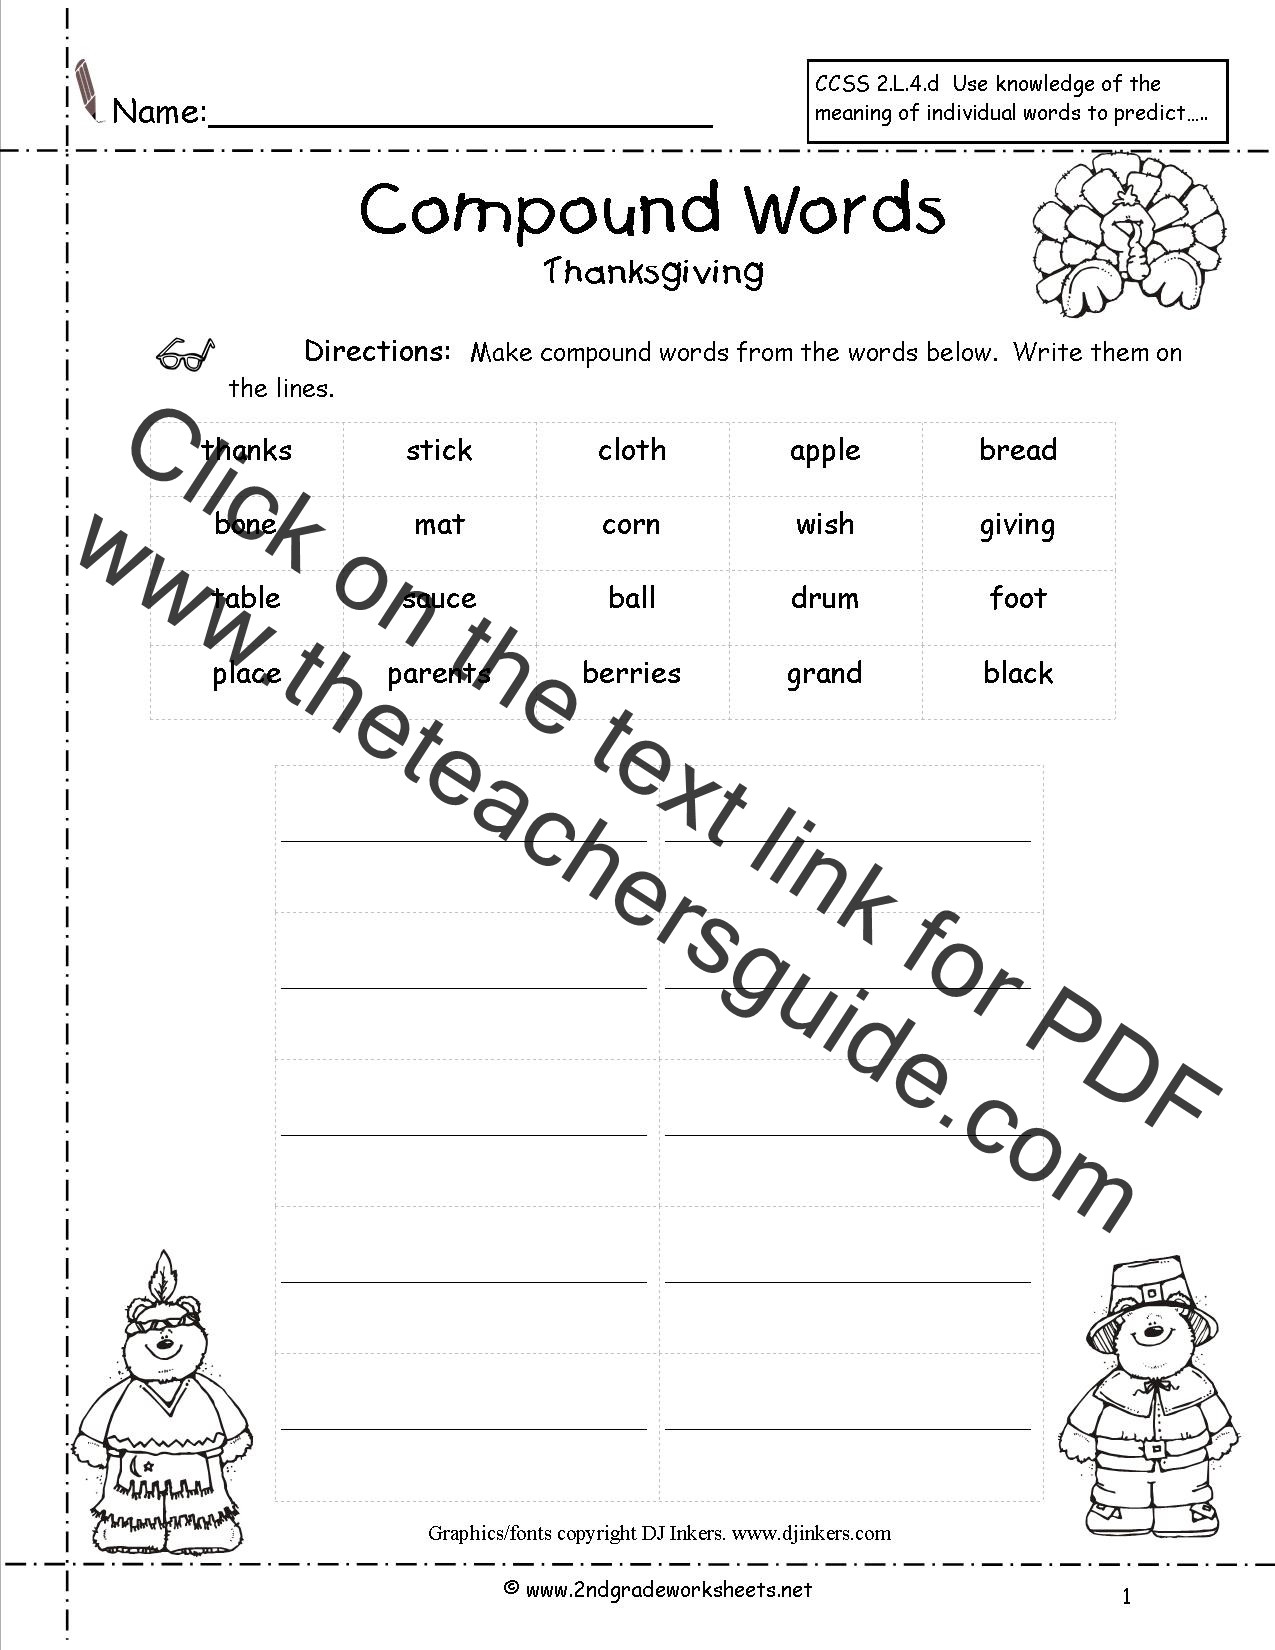 Compound Words Worksheets 1st Grade Thanksgiving Worksheets 2nd Grade